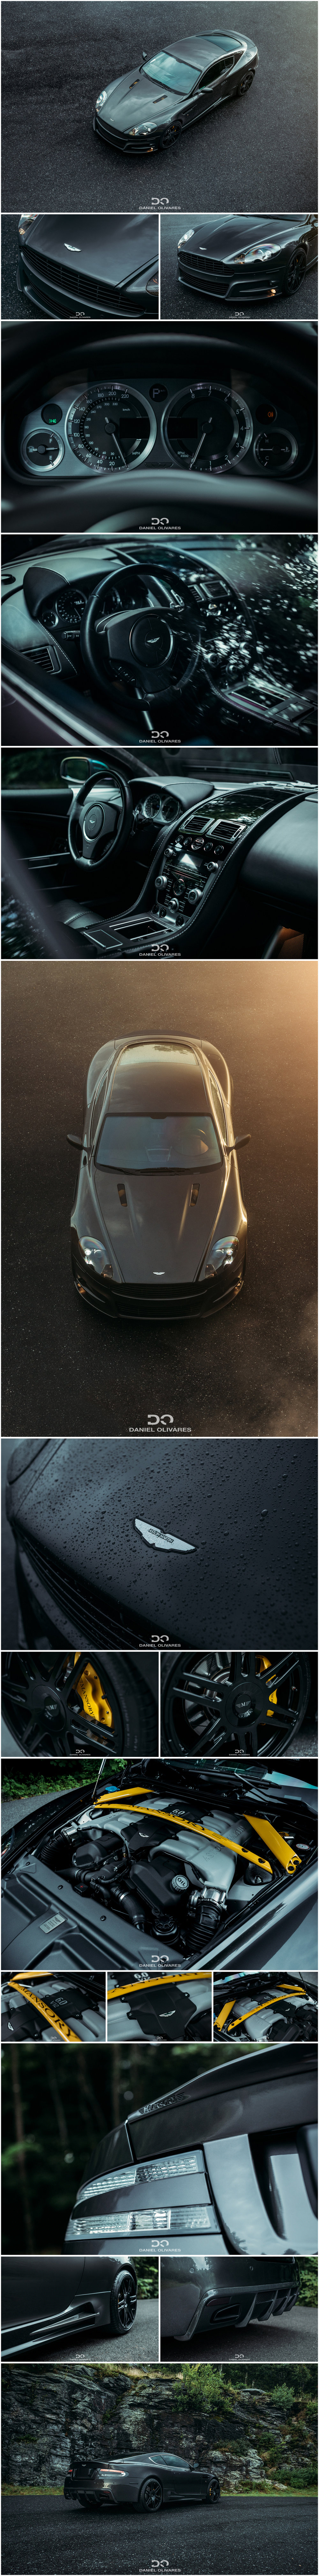 Aston Martin DB9 - Collage.jpg